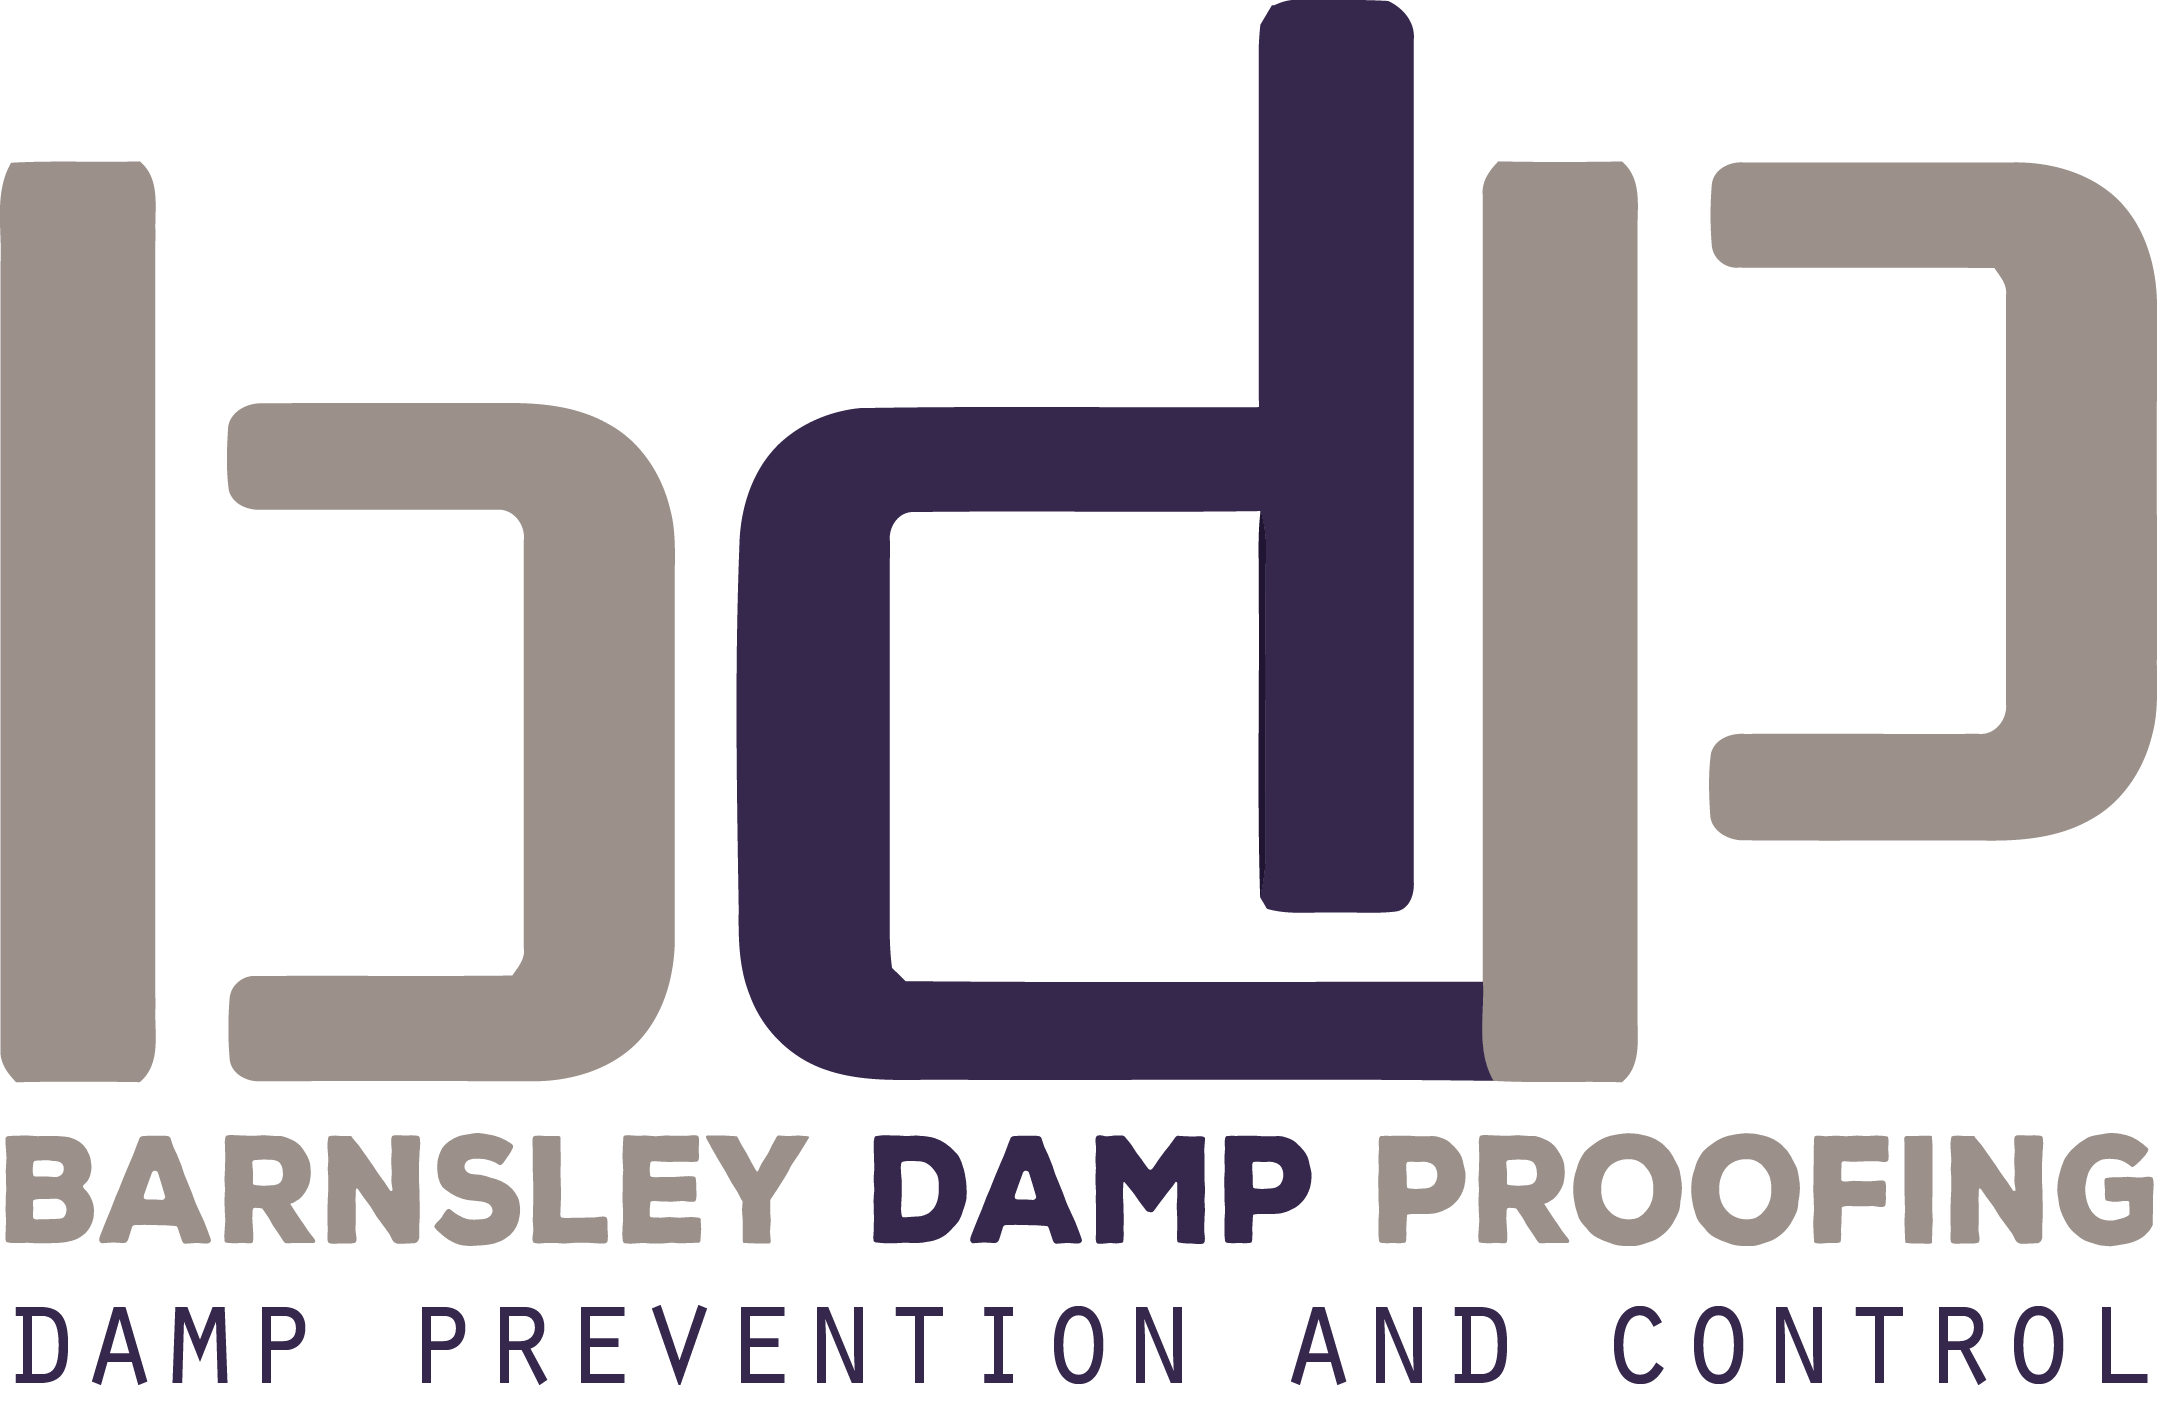 Barnsley Damp Proofing